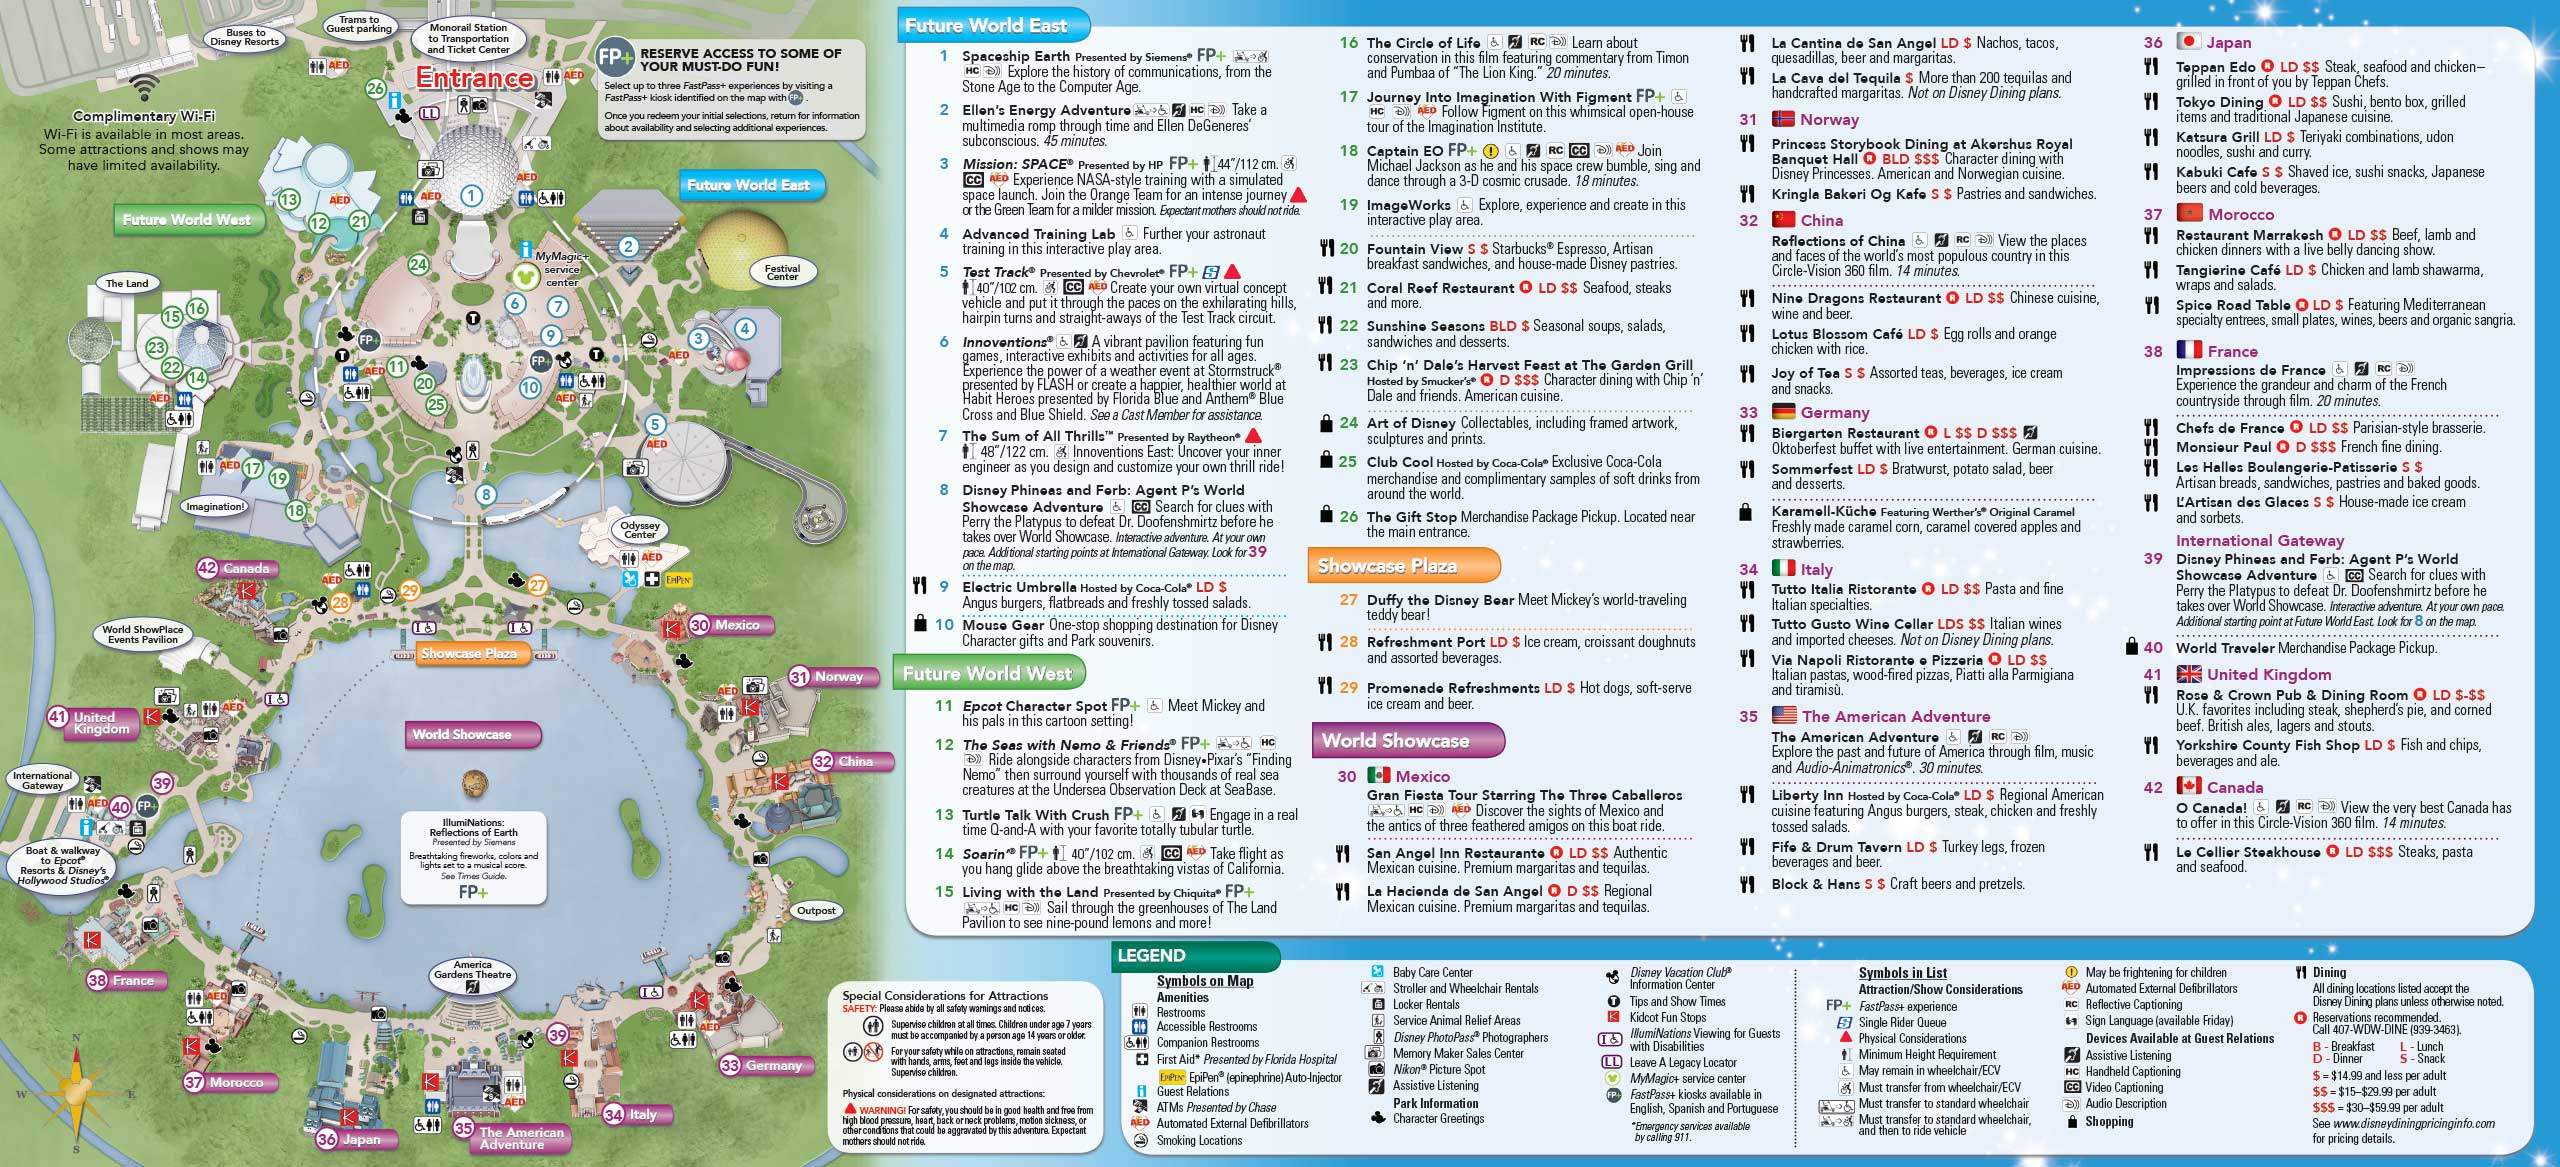 May 2015 walt disney world resort park maps photo 6 of 14 may 2015 walt disney world resort park maps gumiabroncs Choice Image